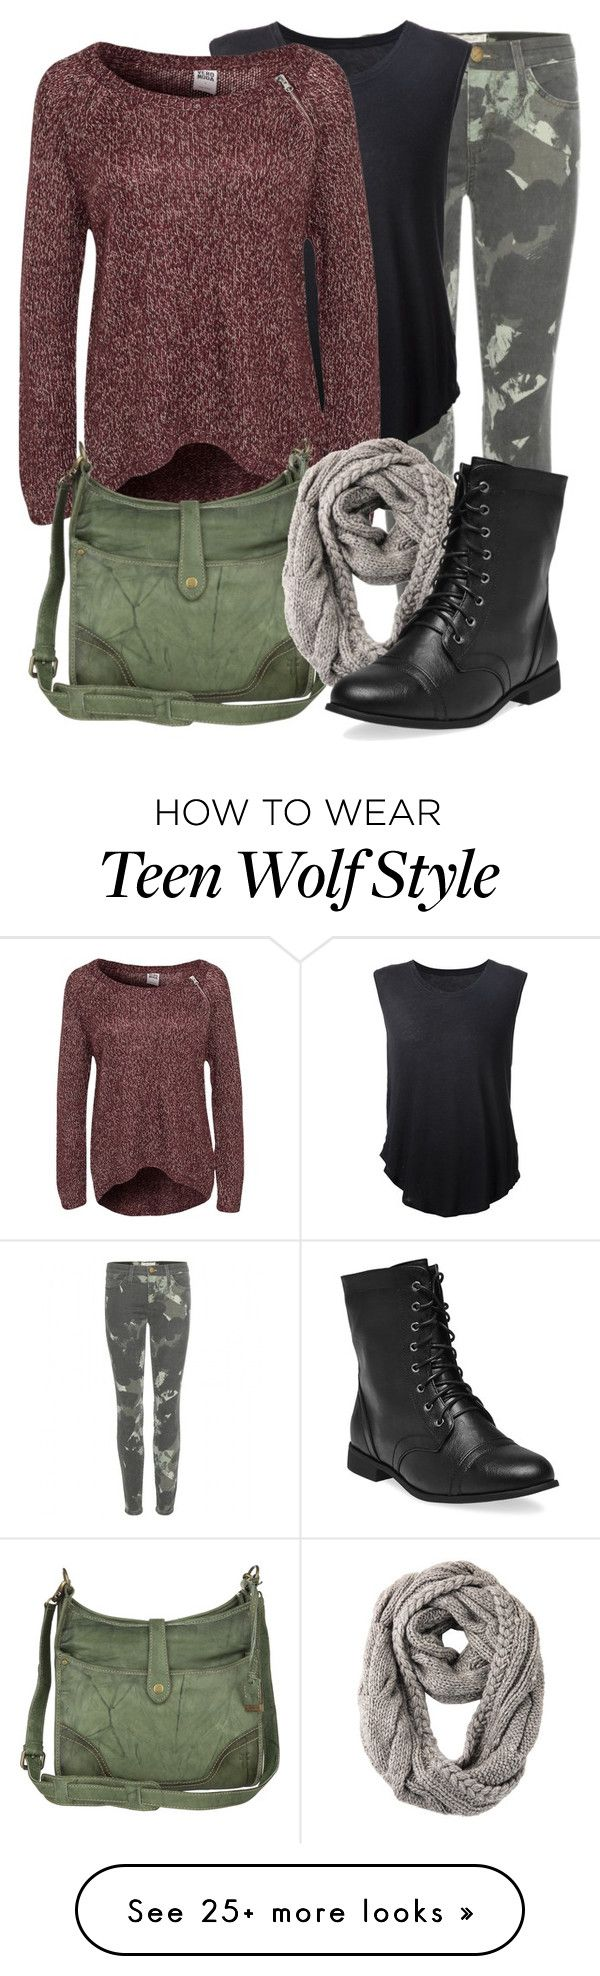 """Teen Wolf- Malia Tate"" by darcy-watson on Polyvore featuring Current/Elliott, Raquel Allegra, Vero Moda, Frye, RE ENVY, Wet Seal, TeenWolf and Malia"